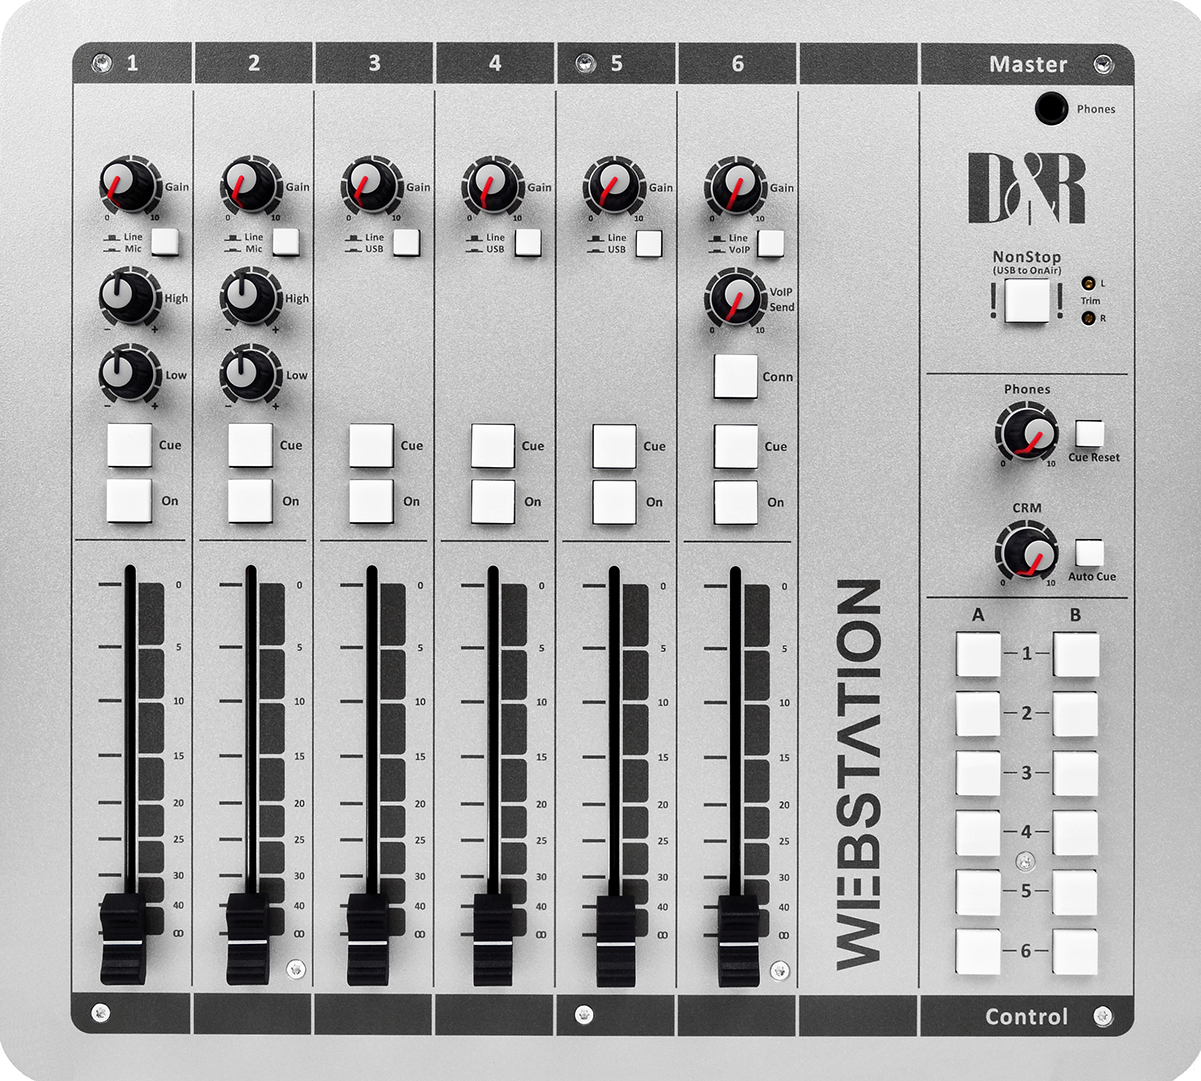 D-R Webstation